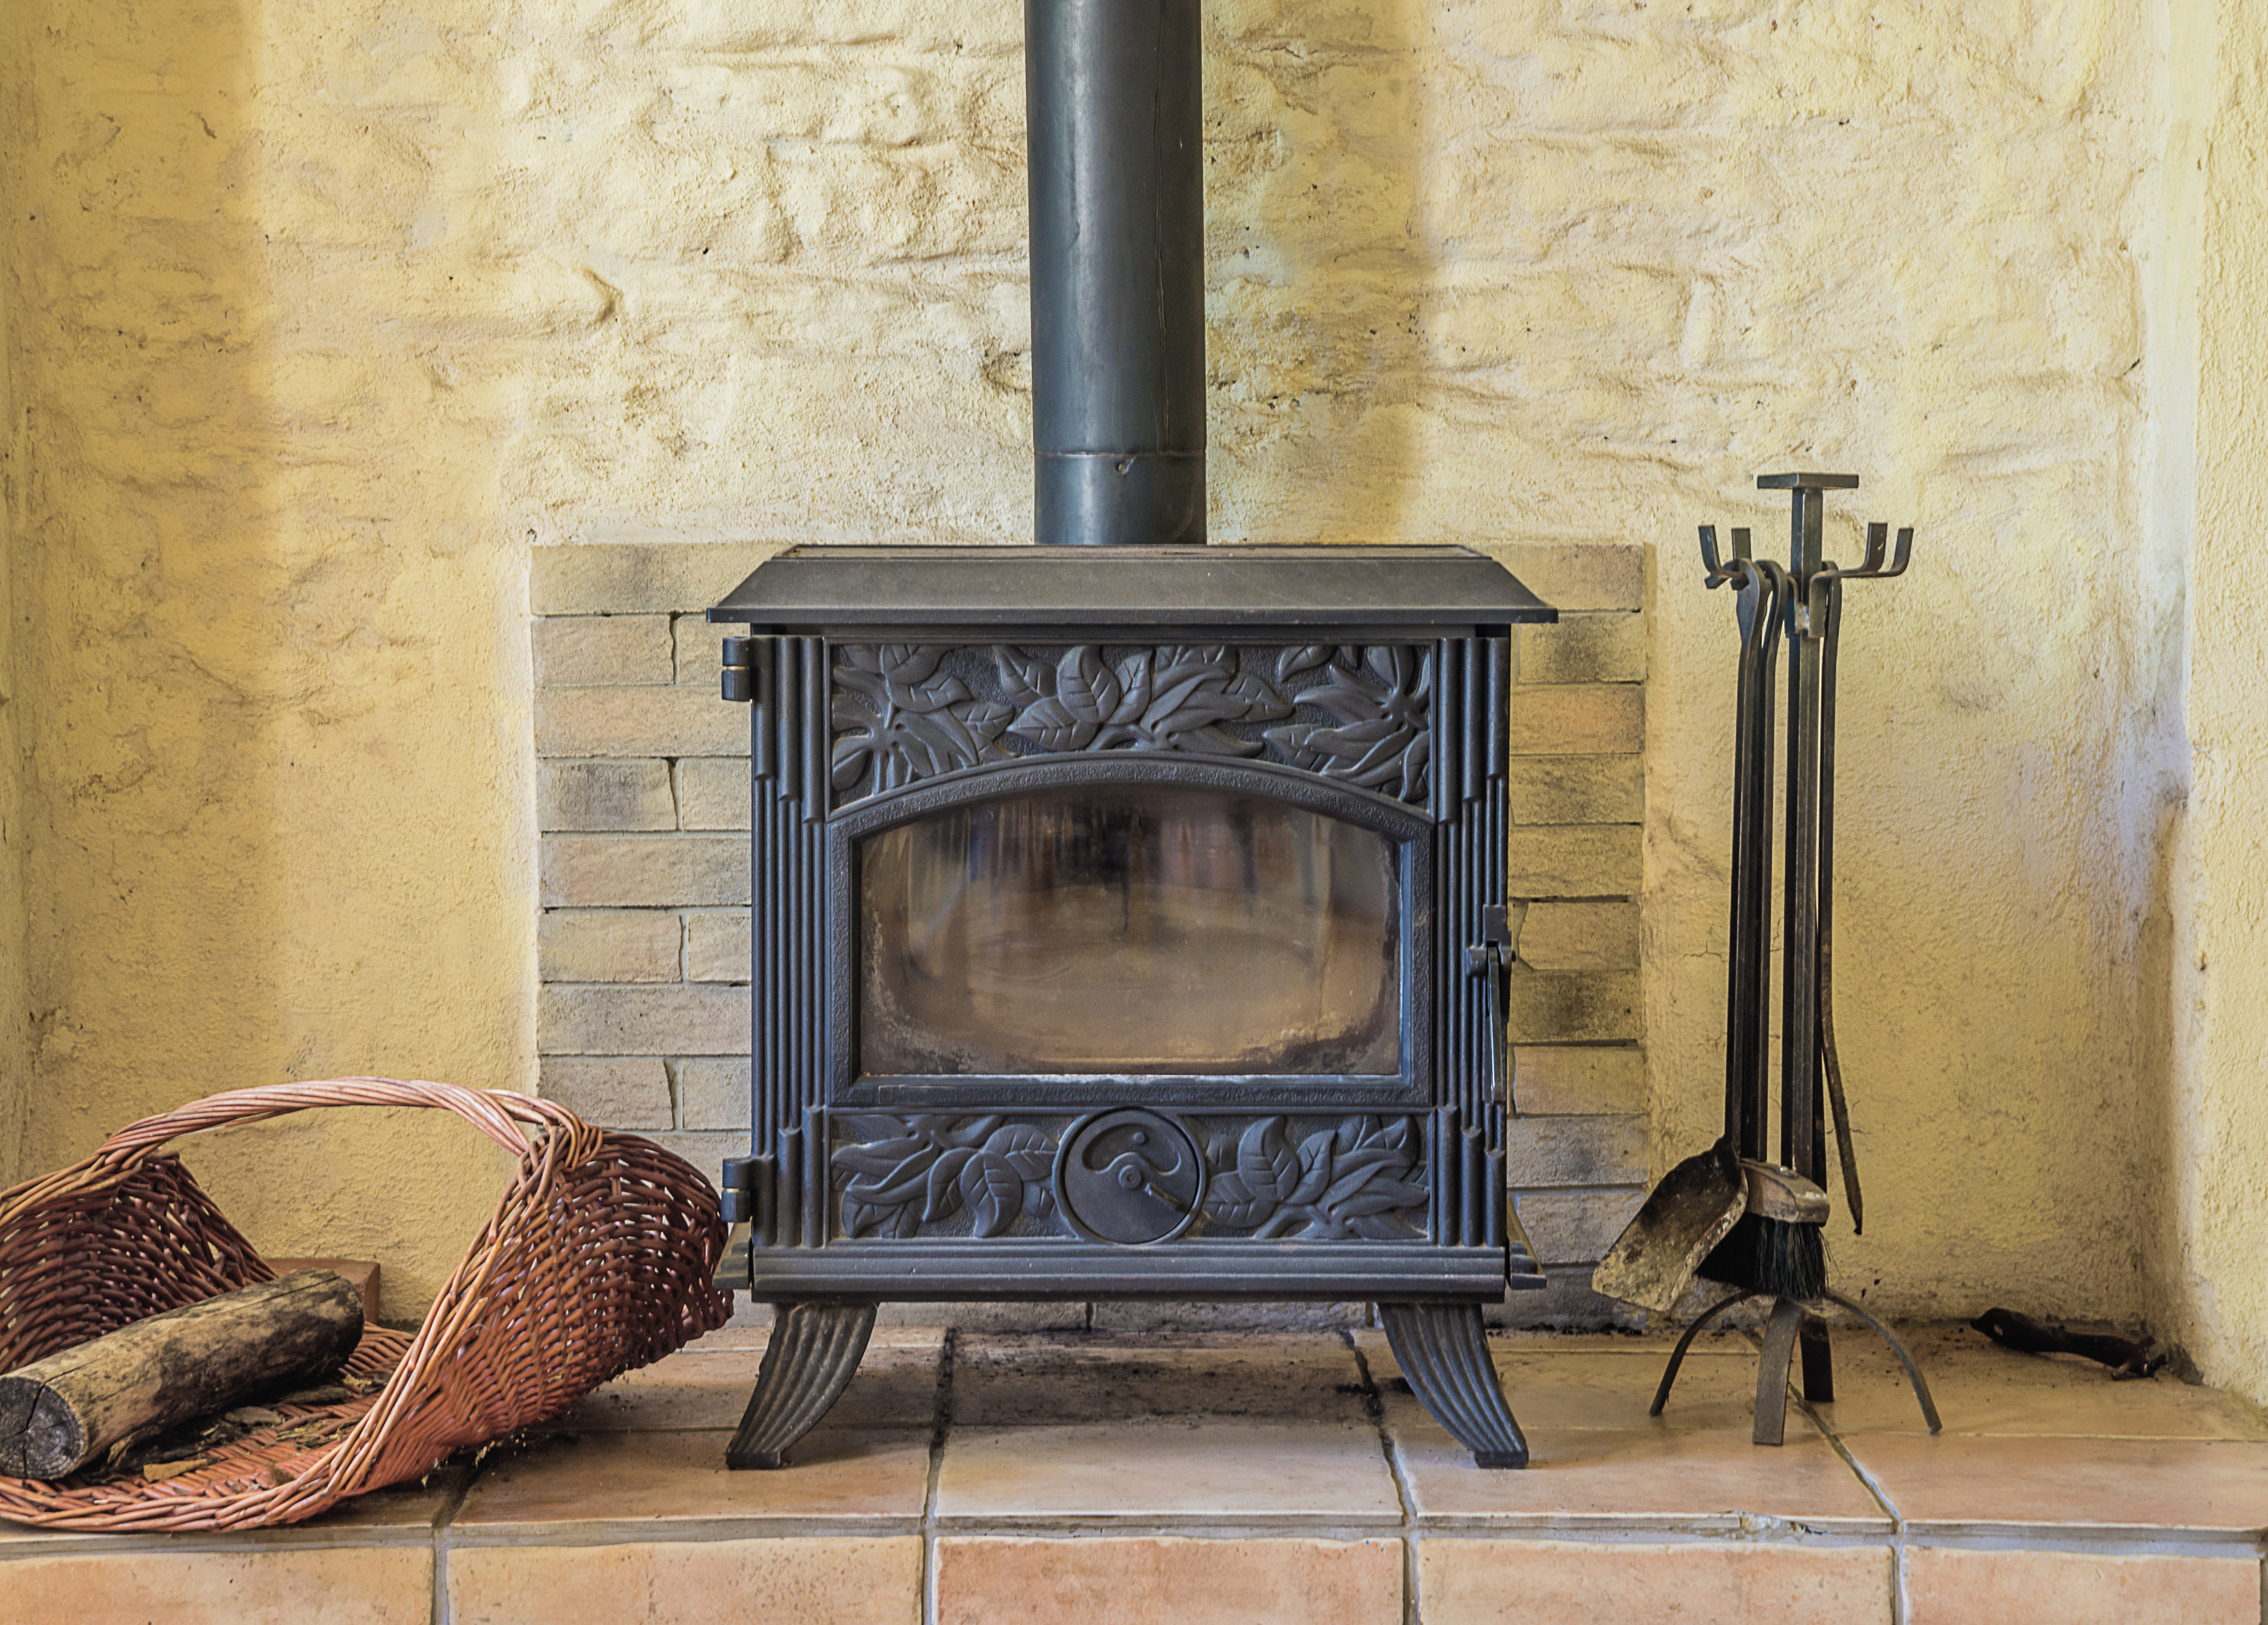 How Hot Can Wood Stoves Get Hunker